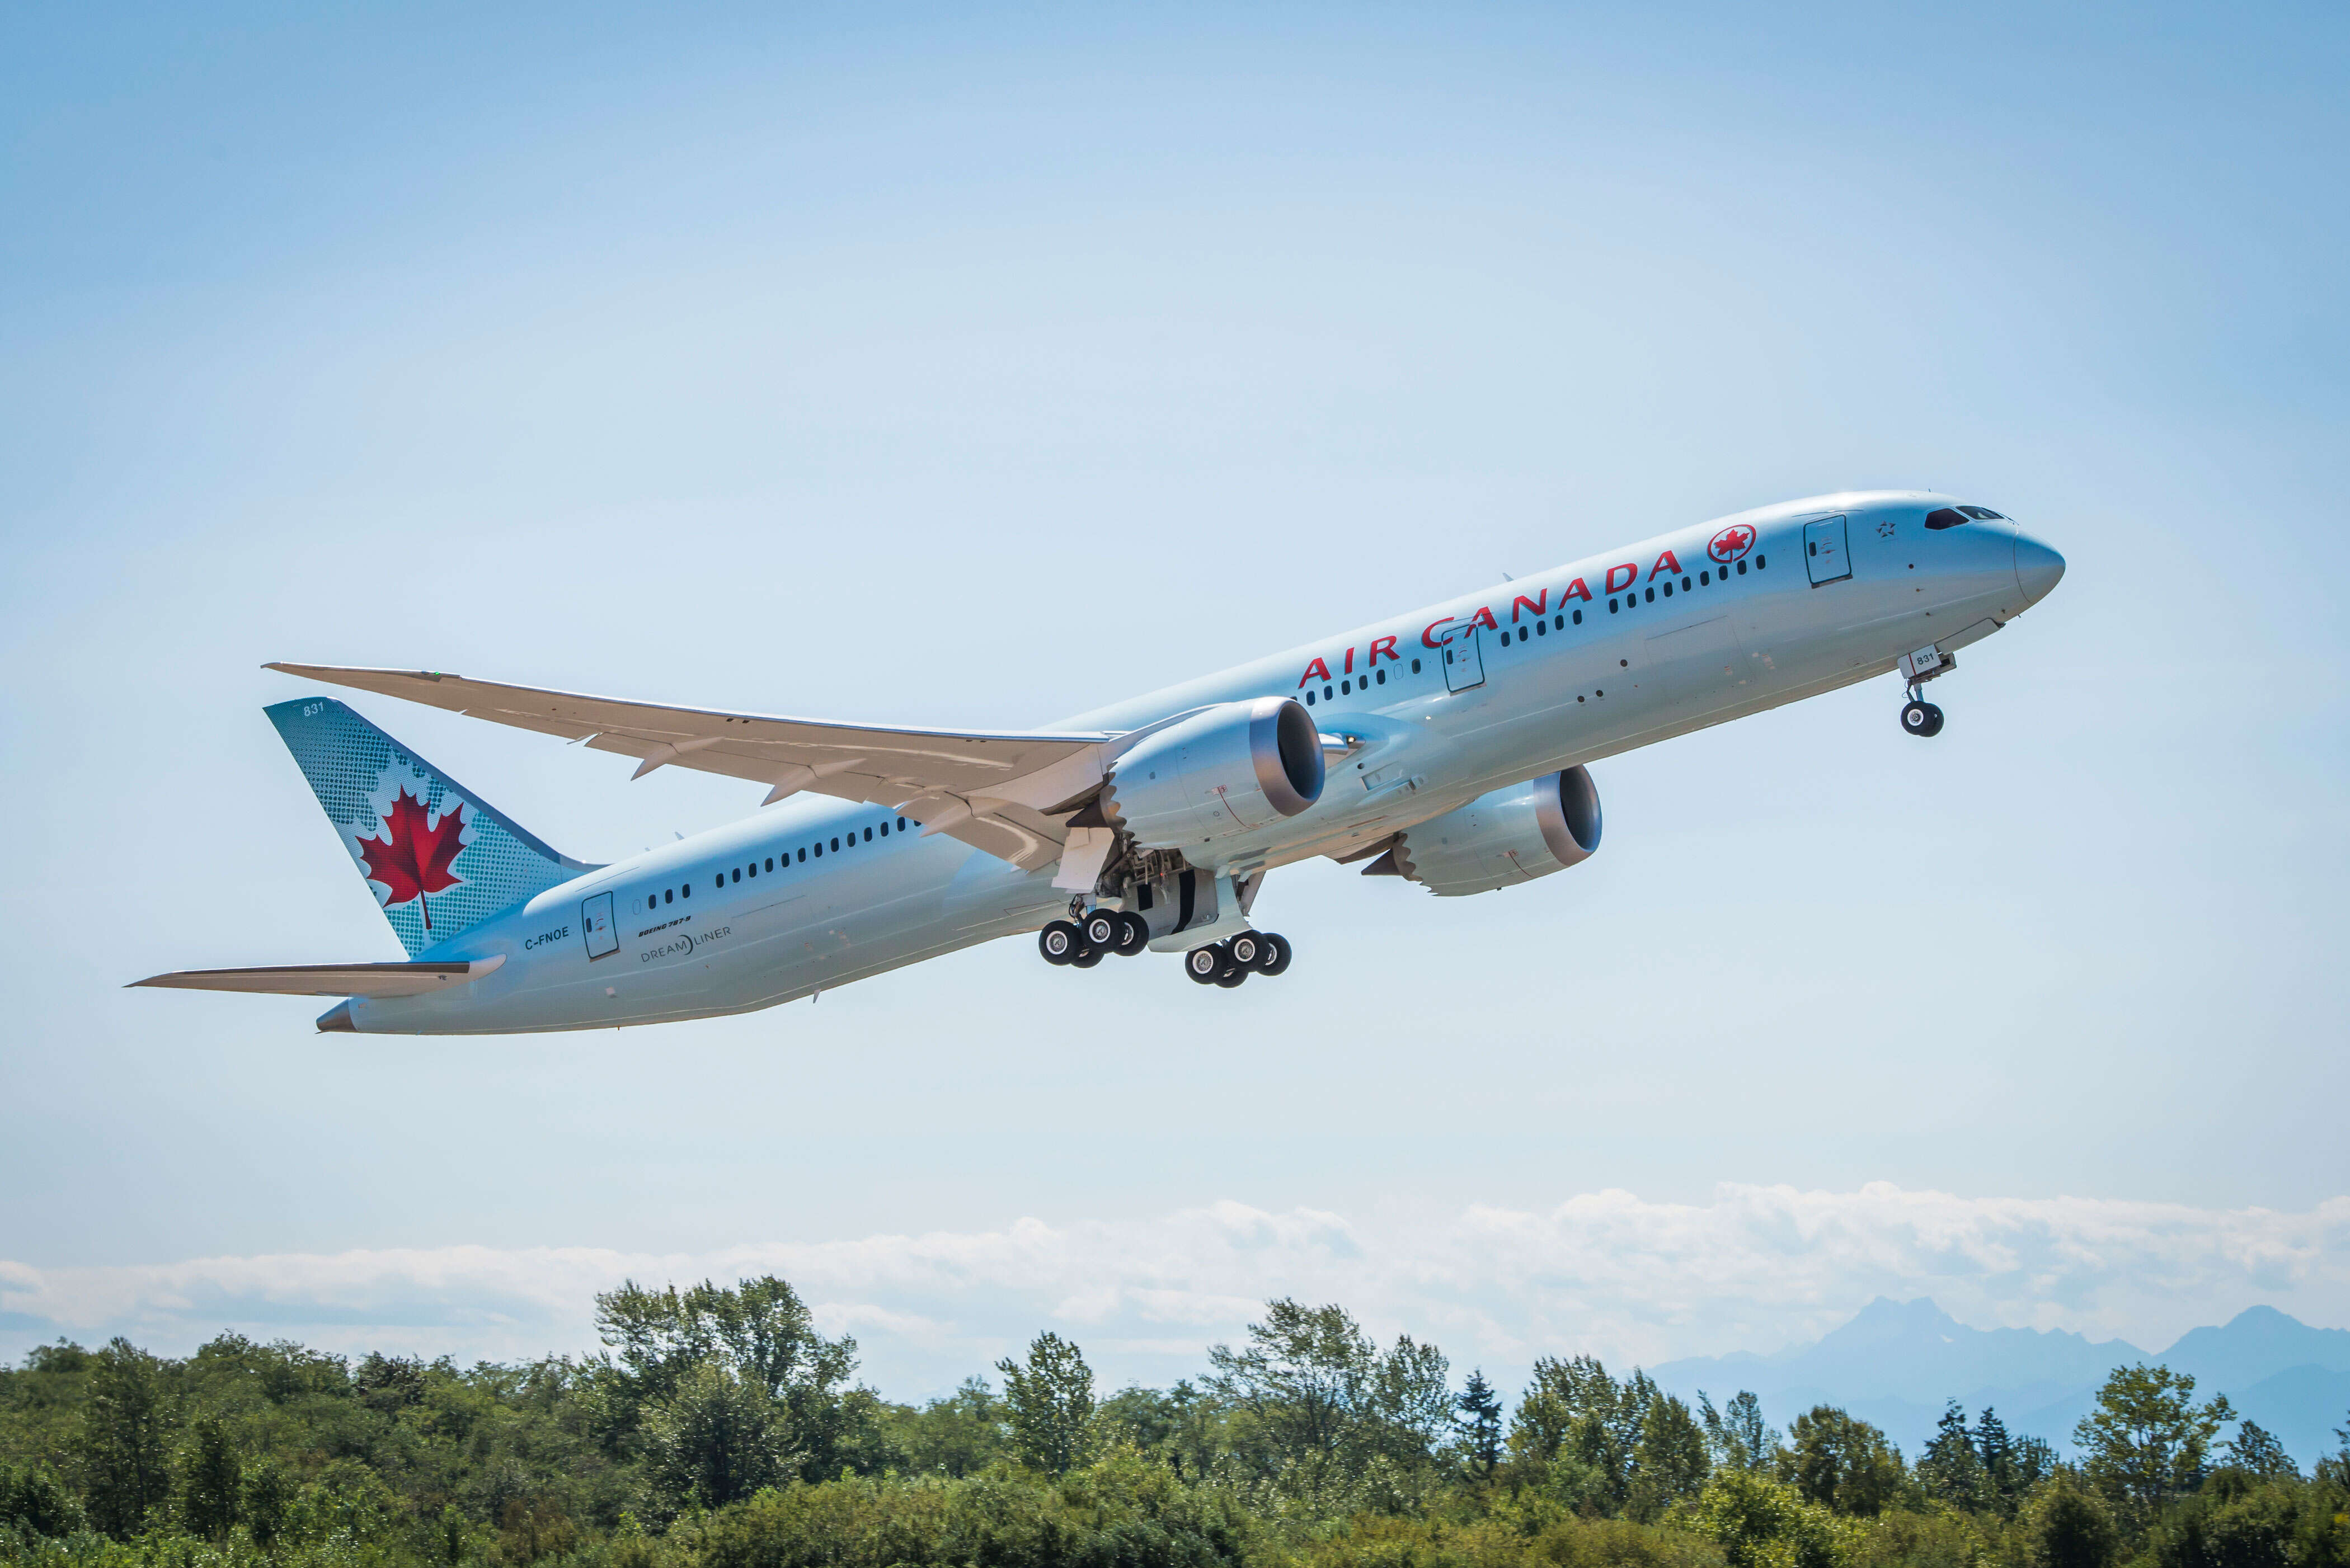 New Air Canada Non-stop Flights, and Dreamliner Service to Europe and Asia